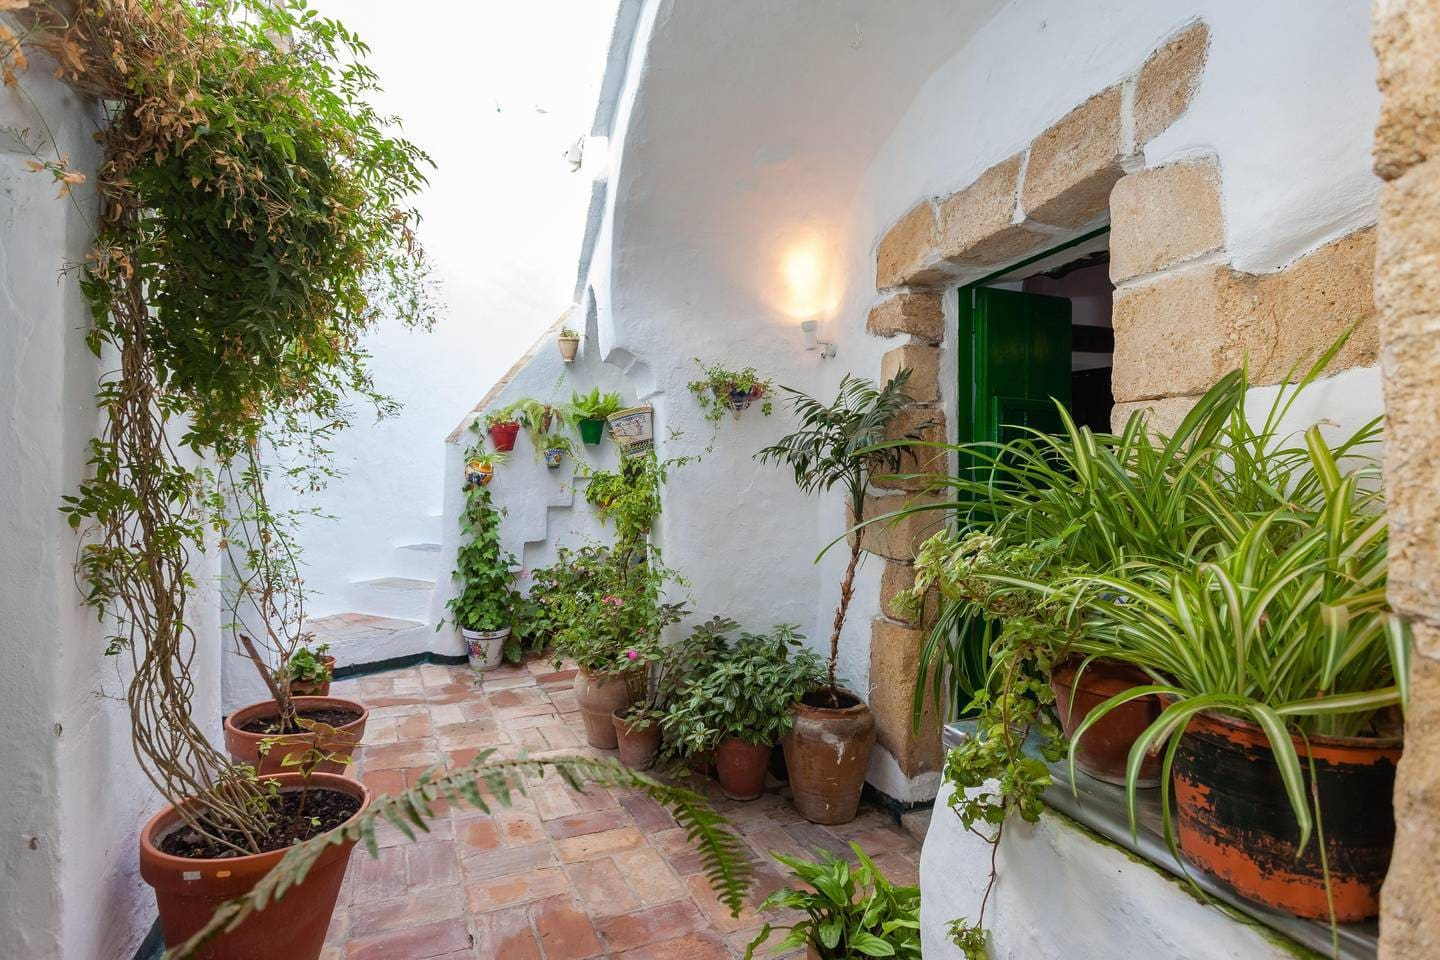 Part of your private space in a centuries-old home. Most homes in the Old Town have shared courtyards or no outdoor space.